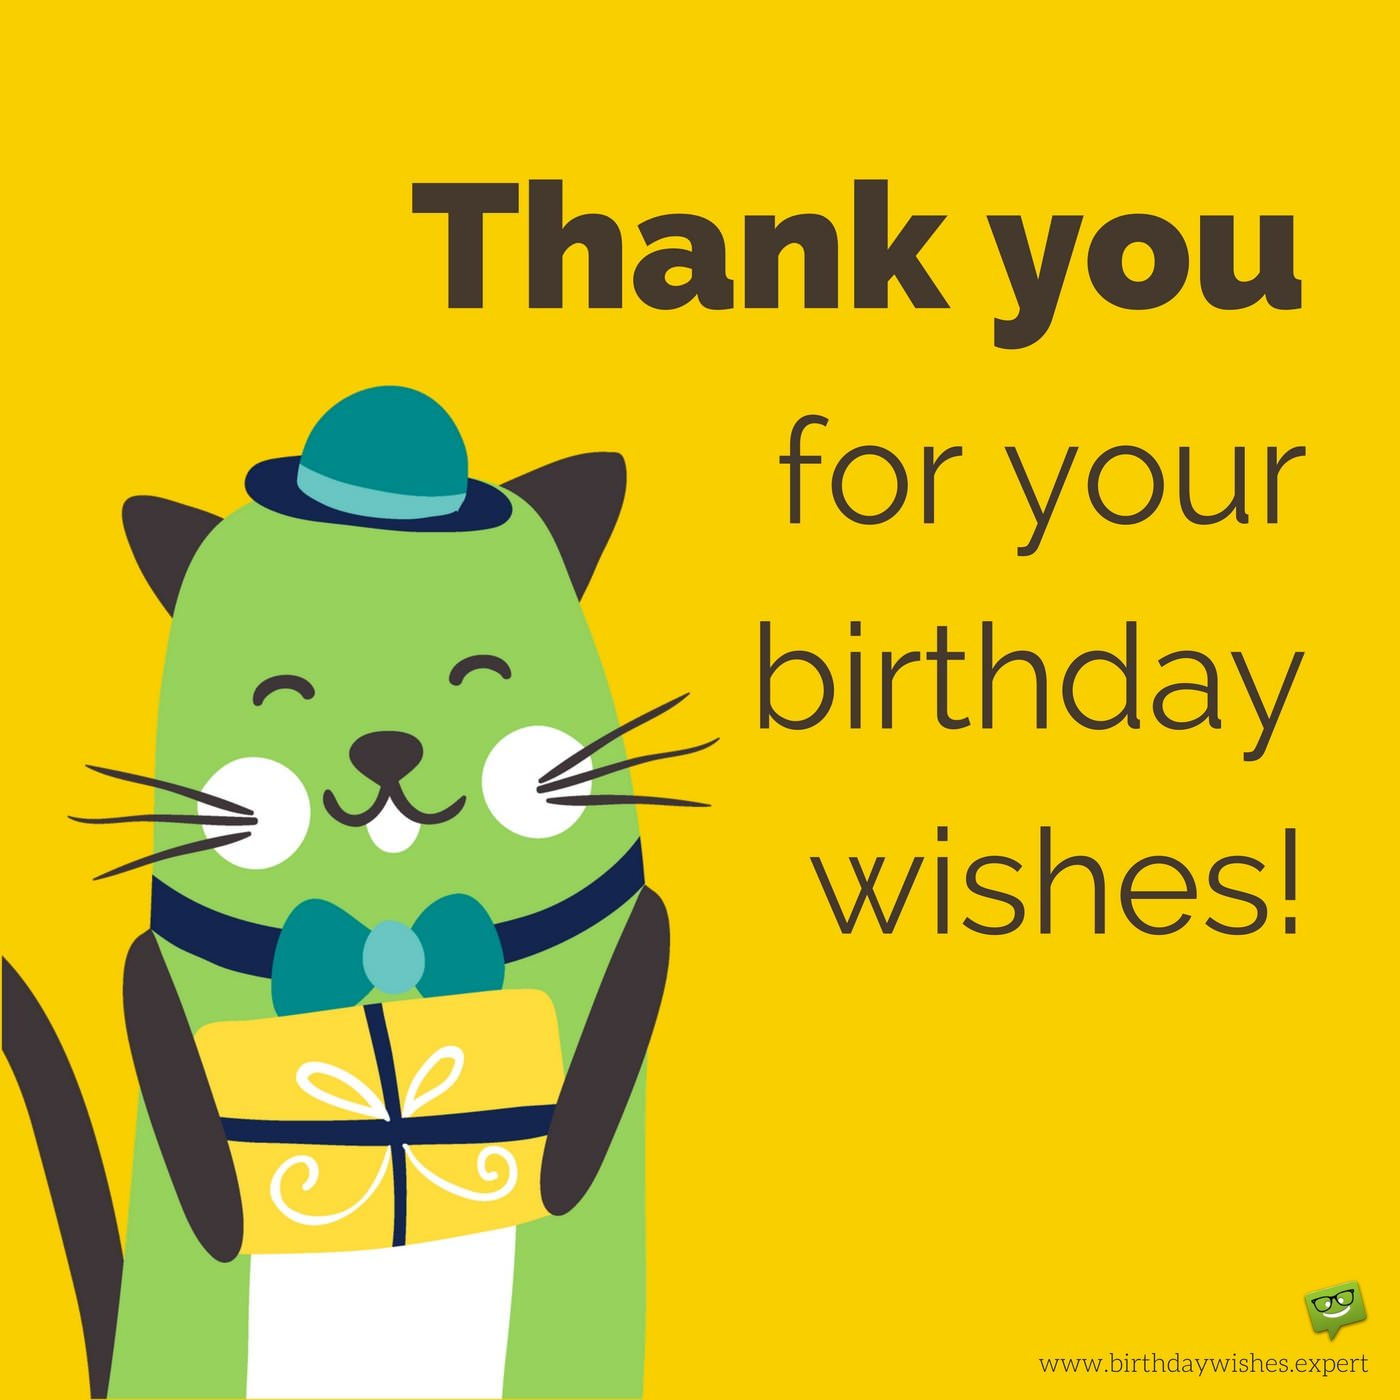 birthday wishes reply message to all ; Cute-thank-you-for-your-birthday-wishes-message-on-image-with-funny-animal-holding-a-gift